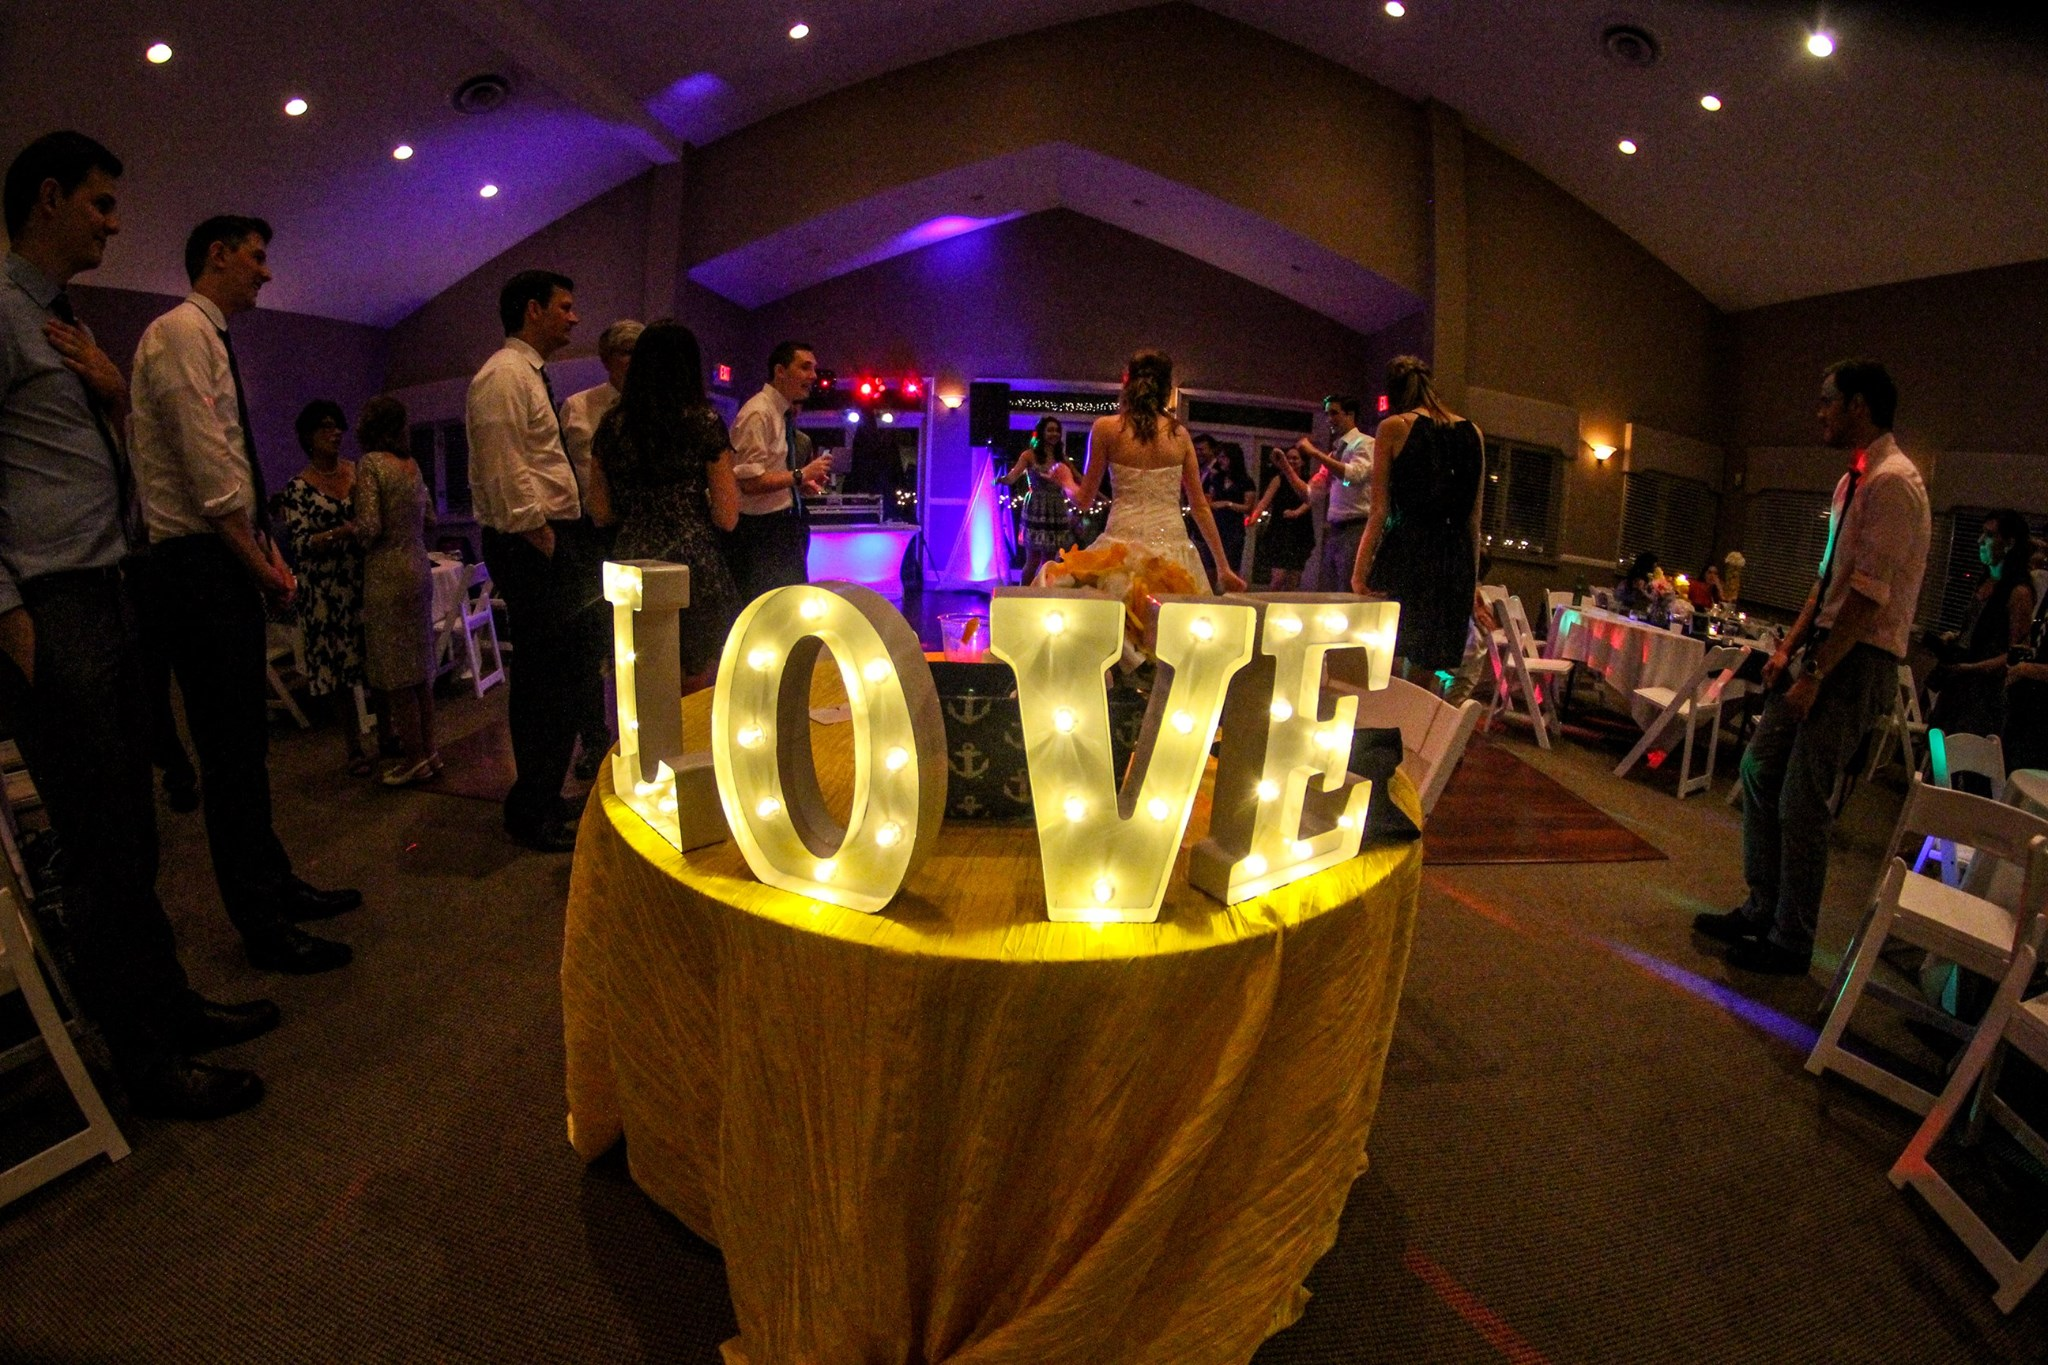 Love in lights at community life center east side of indianapolis